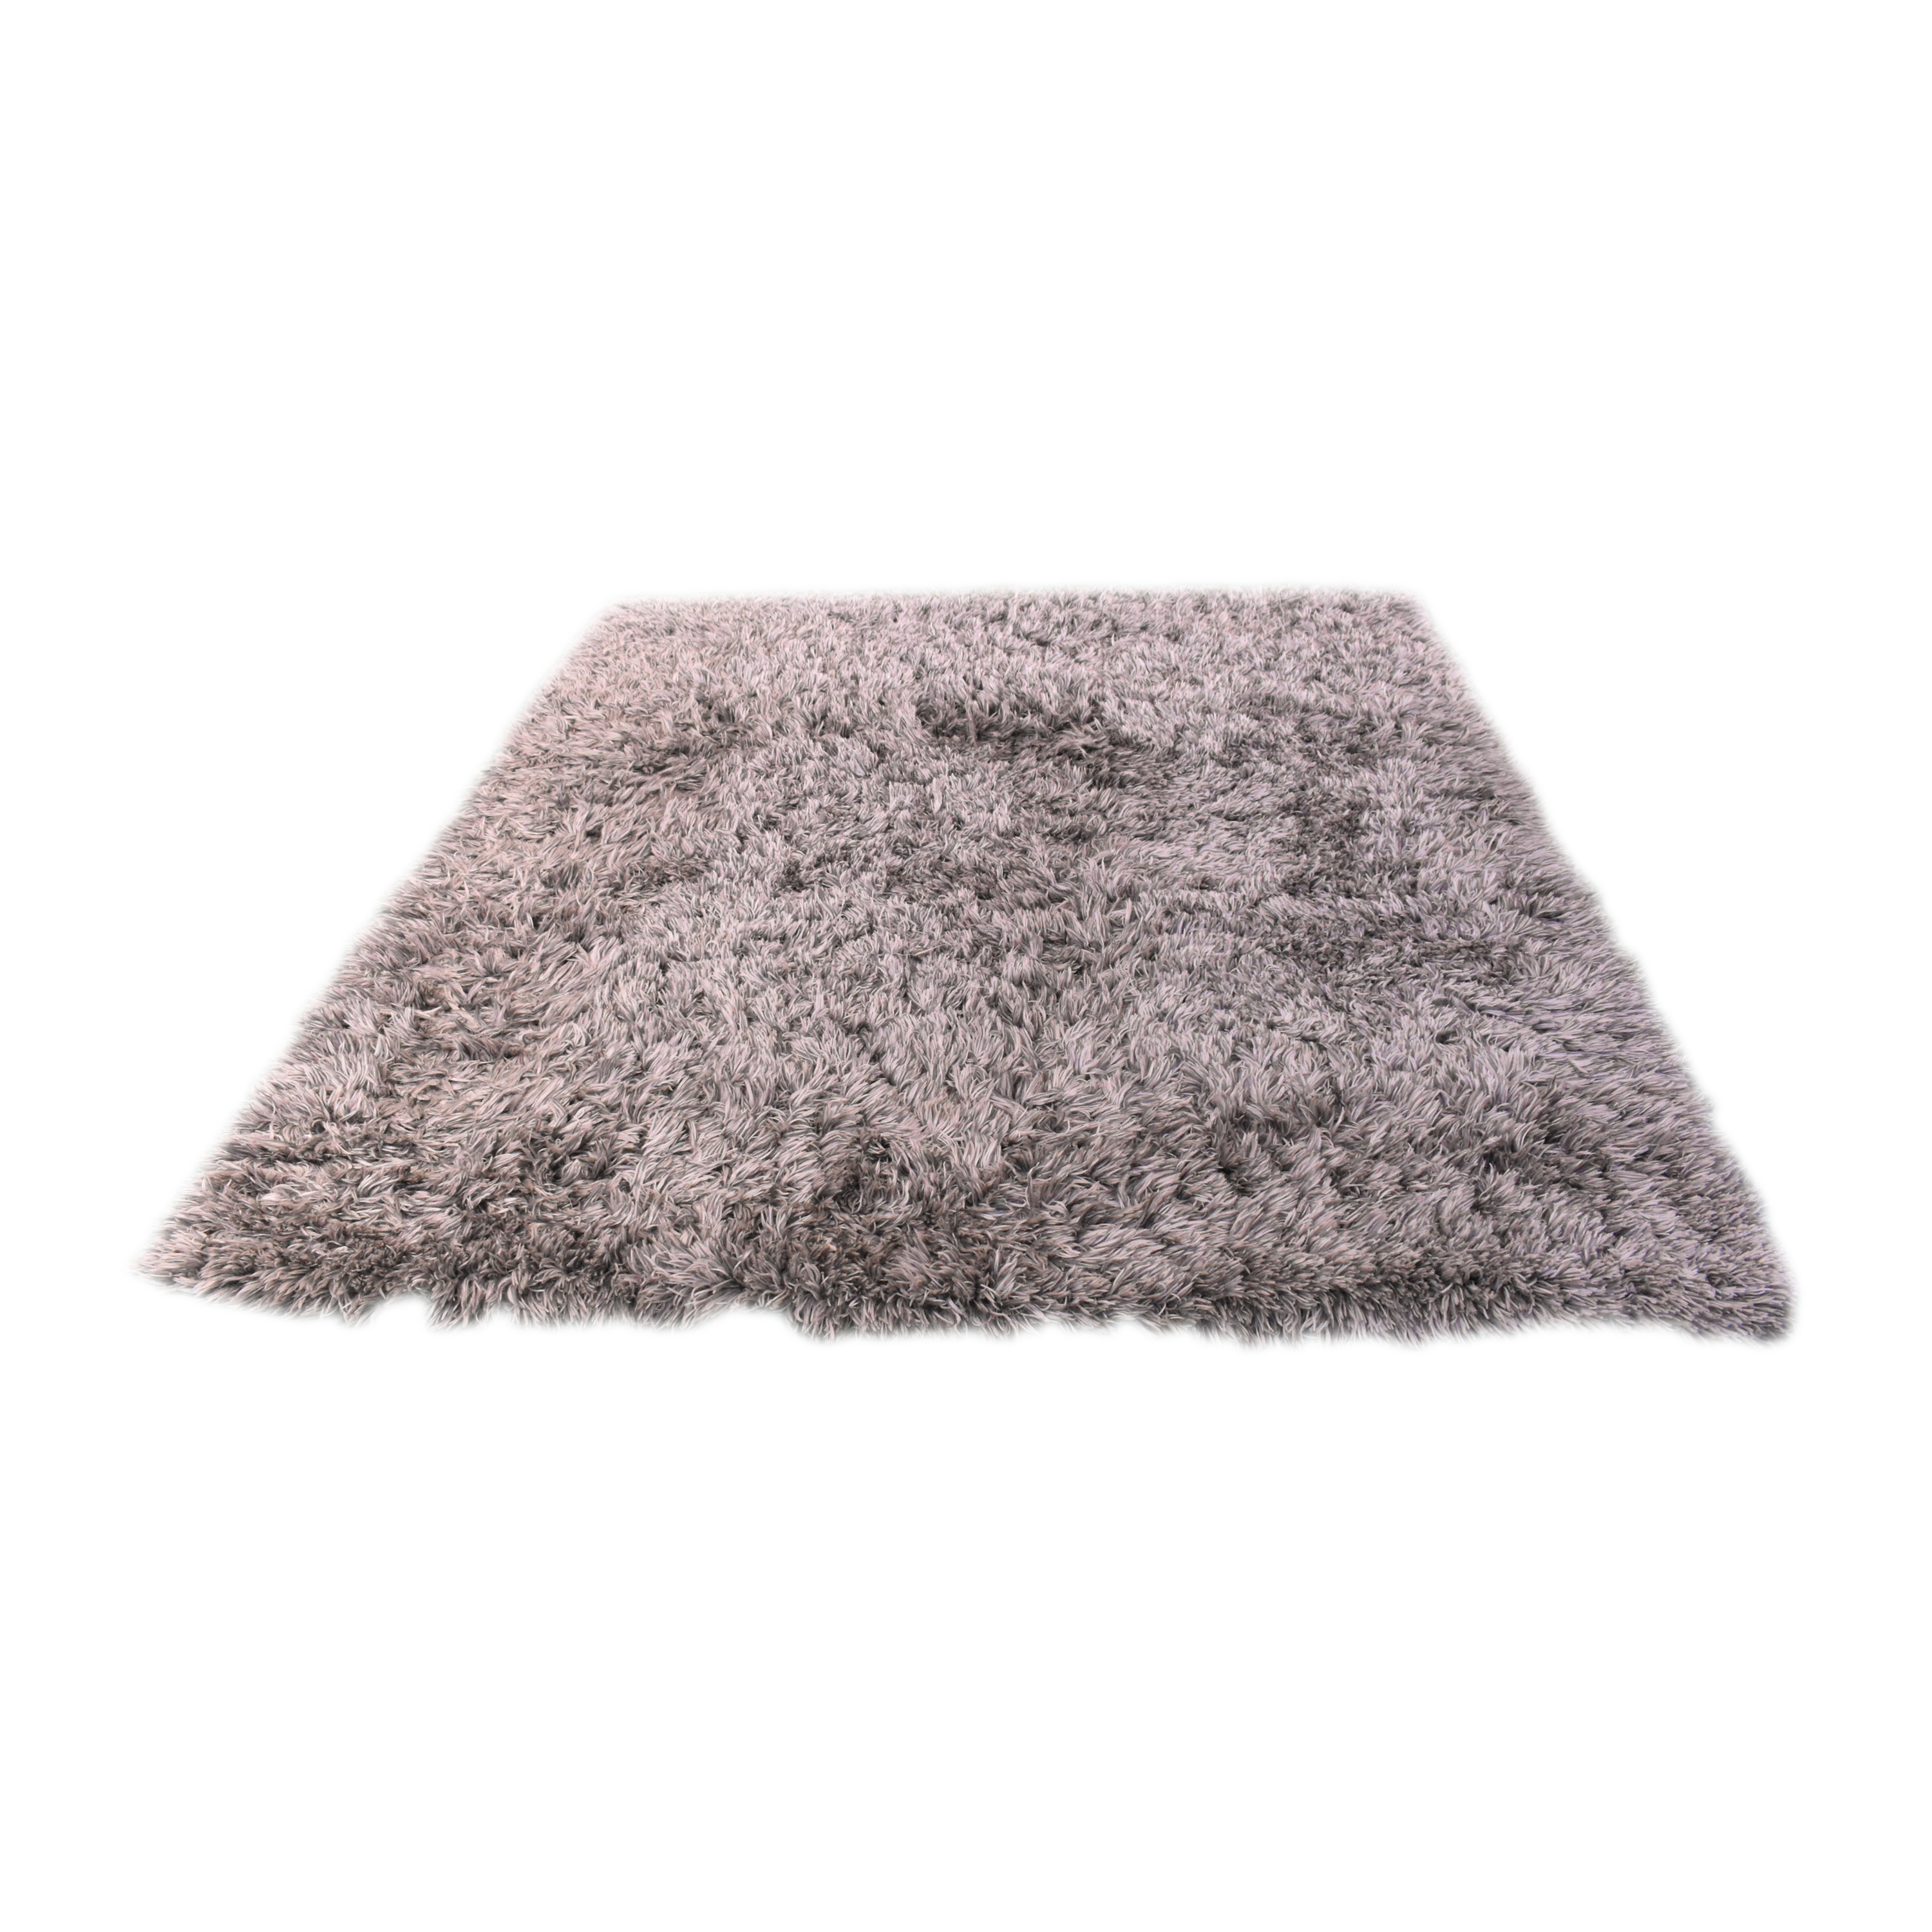 nuLOOM nuLOOM Feather Shag Kristan Rug dimensions